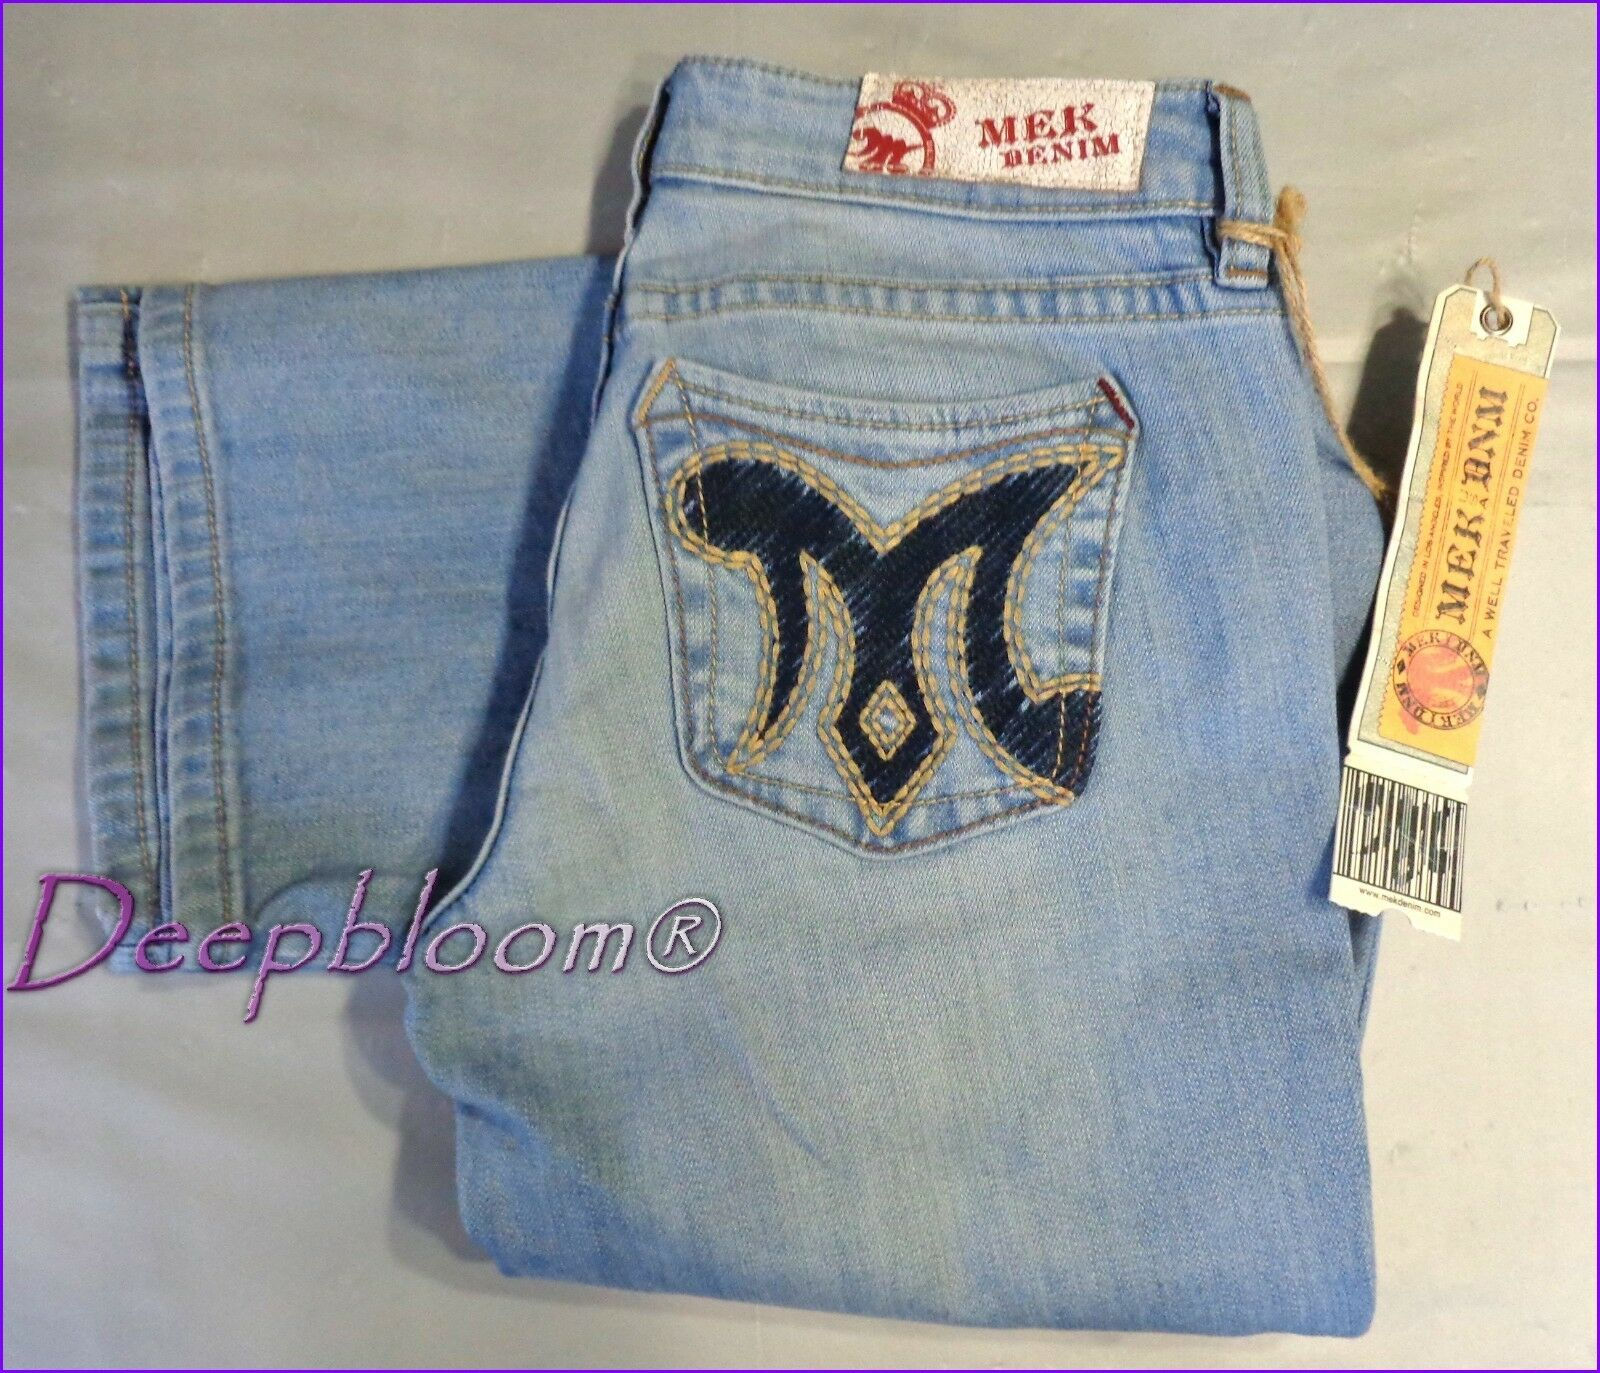 MEK DENIM JEANS PANTS WOMENS 27 28 CYPRESS SLIM FIT BOOT CUT blueE LOW RISE NEW